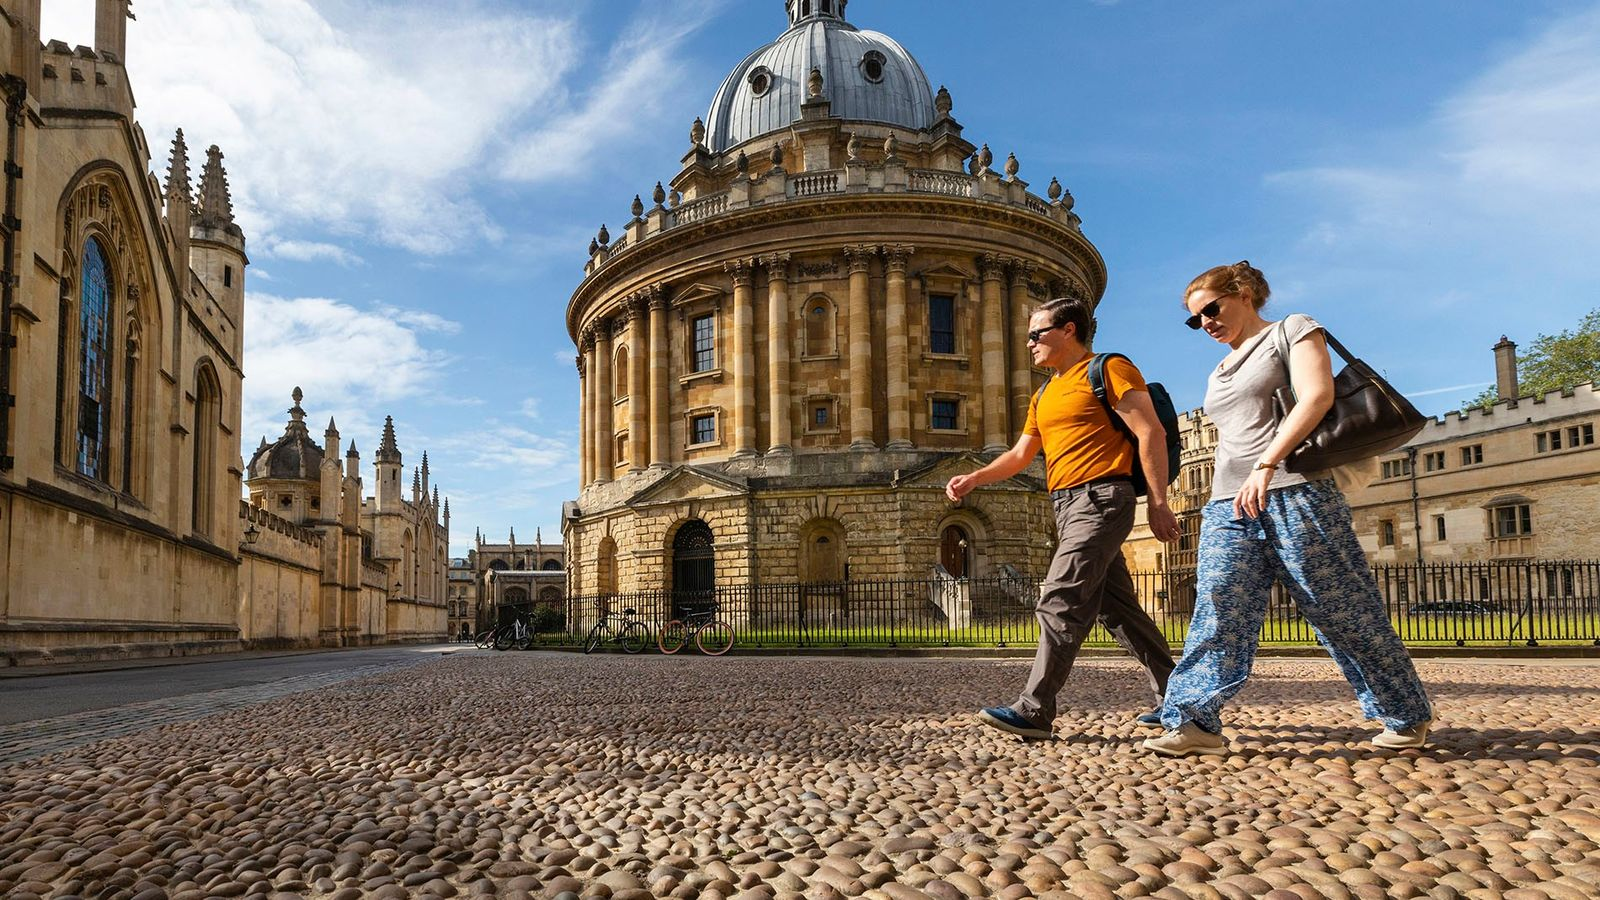 Visitors walk past the Radcliffe Camera, one of the city's most iconic landmarks with over 250 ...